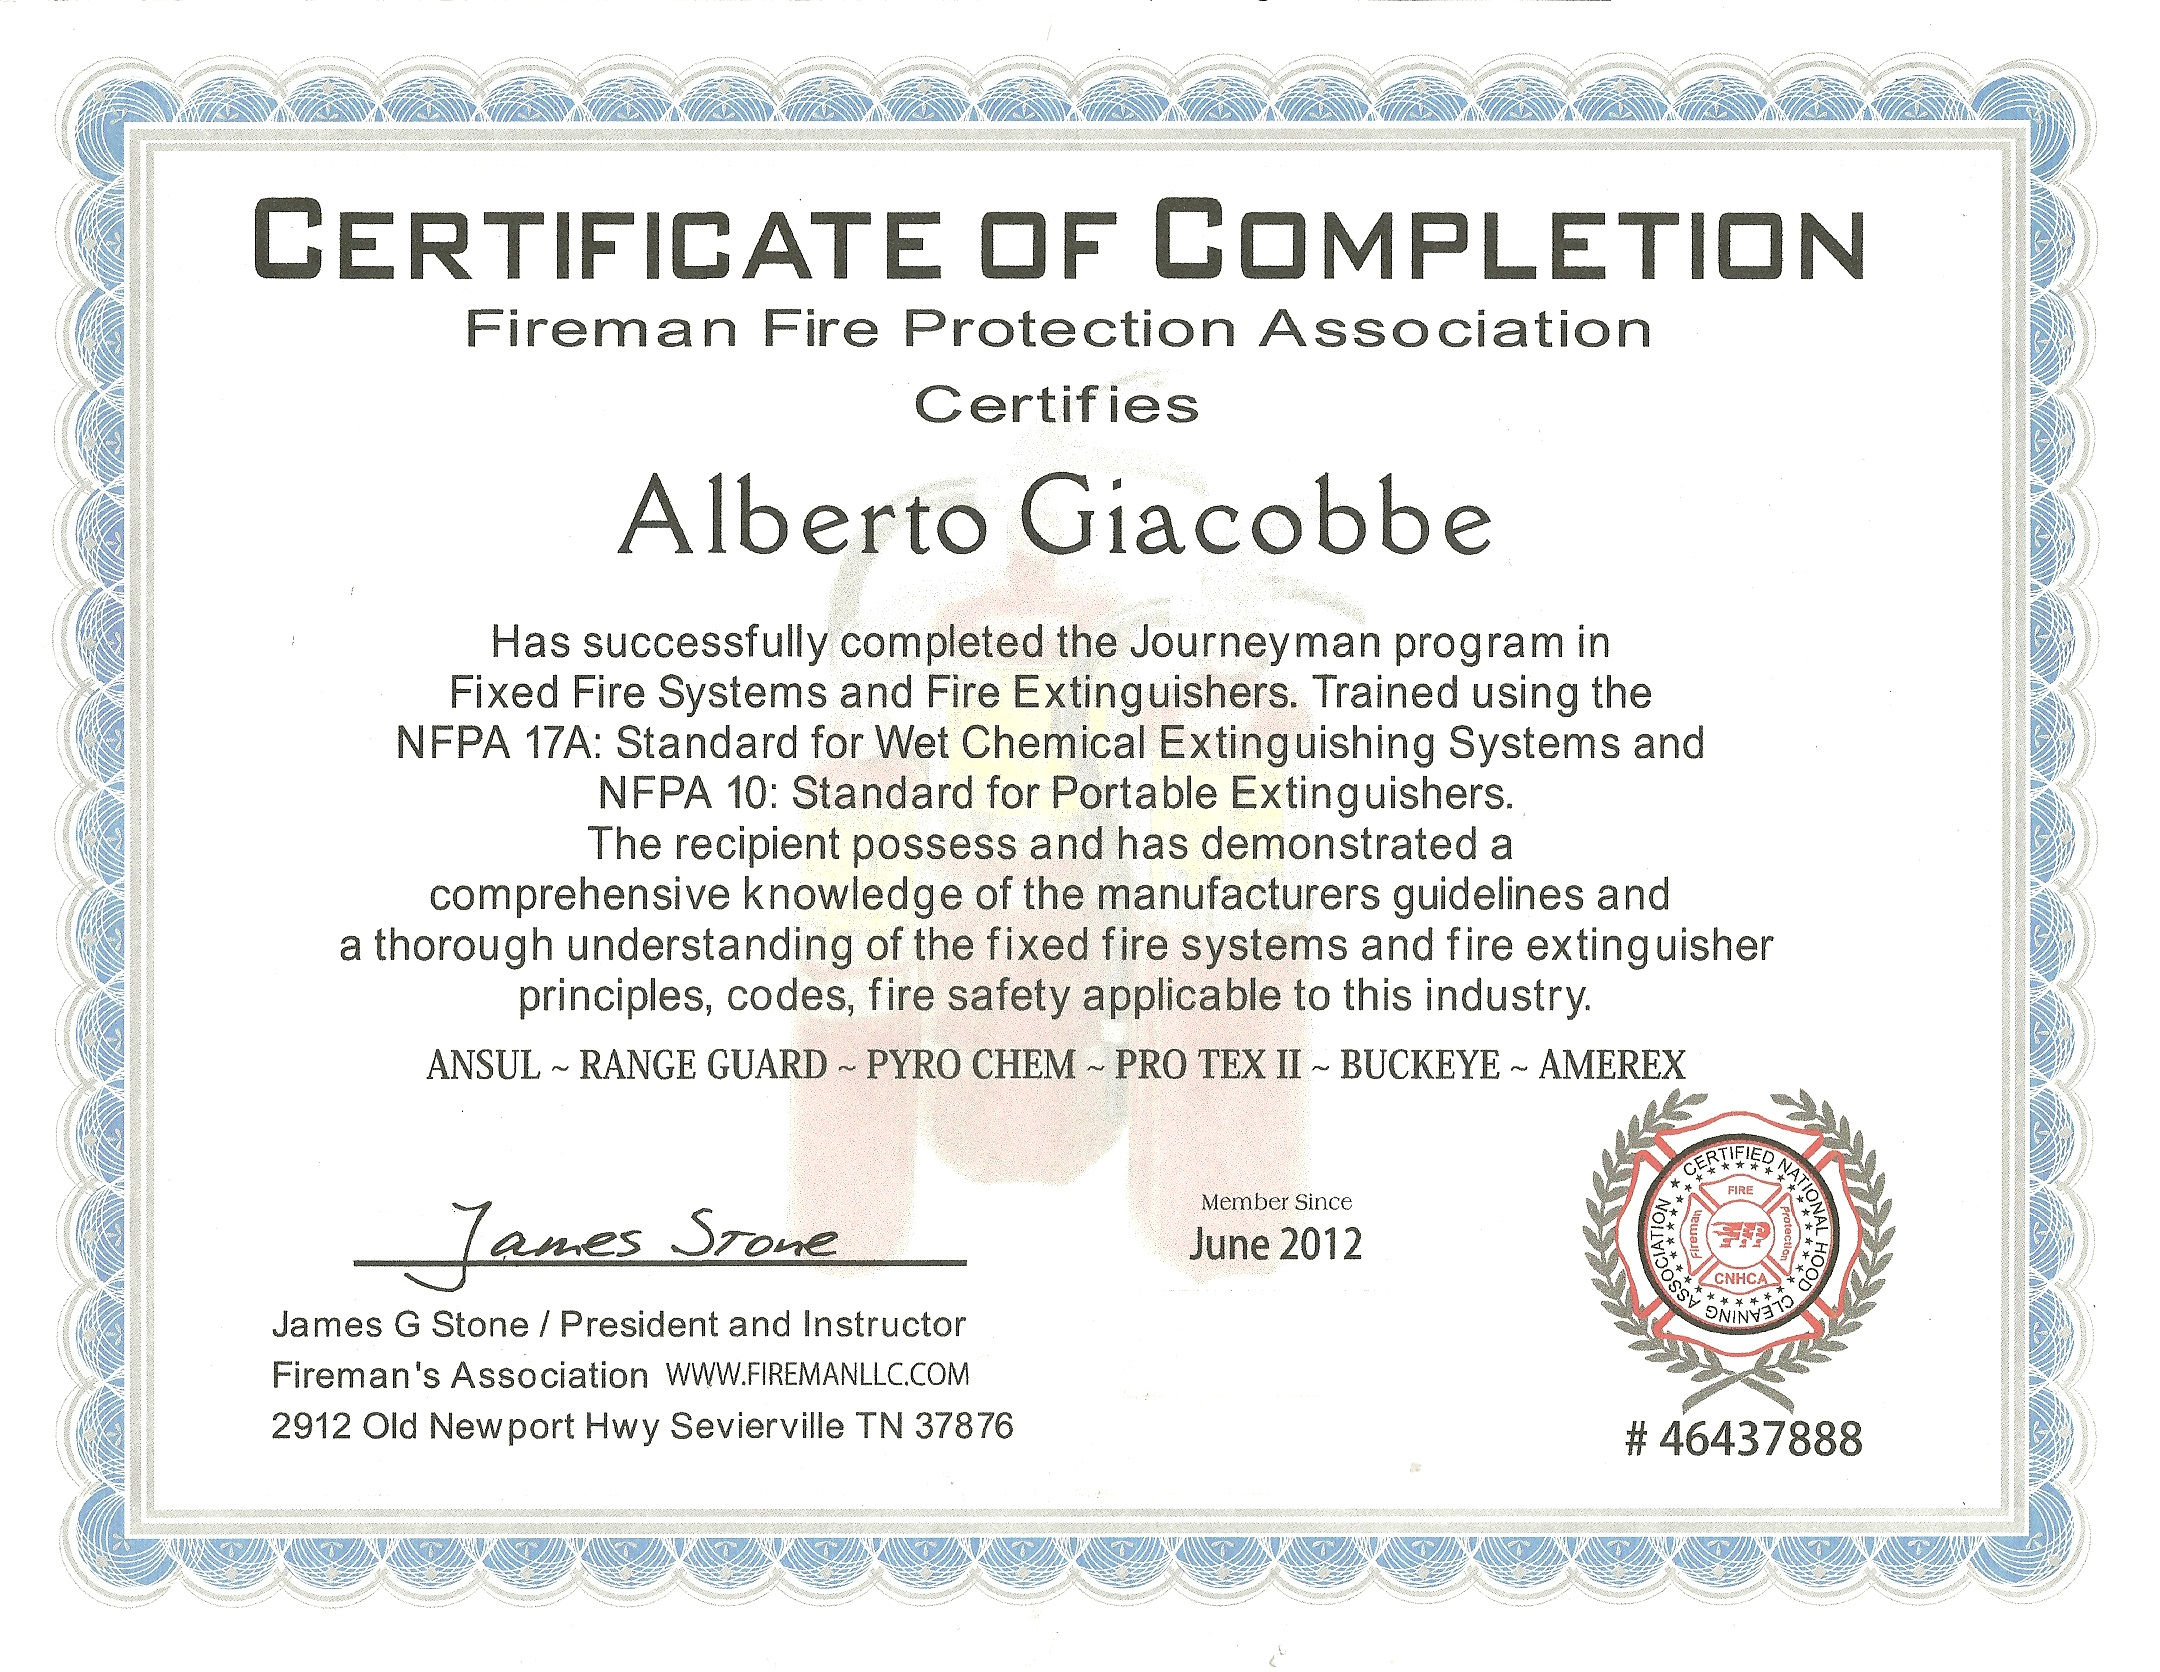 Interior Kitchen Certification certifications jacksonville hood cleaning kitchen fixed fire systems and extinguishers certificated